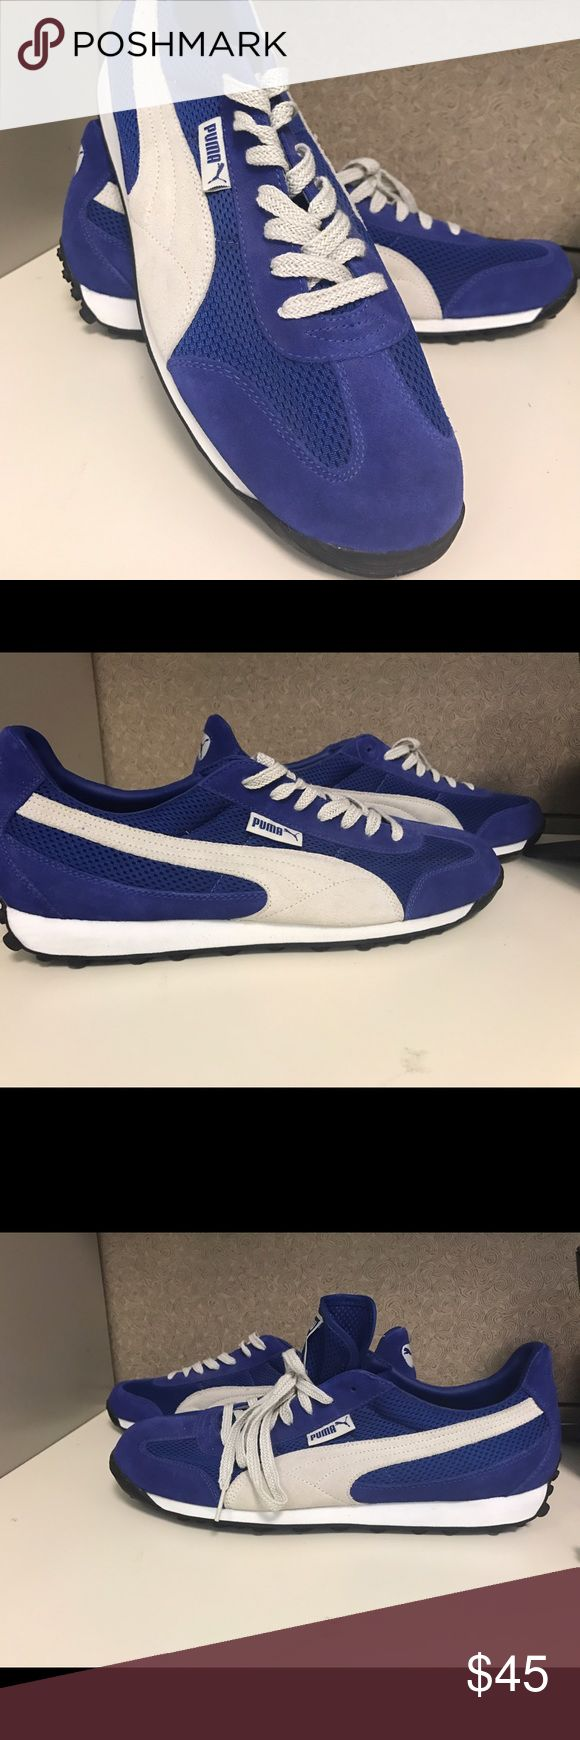 Vintage Puma Royal Blue and Gray Sneakers Men's Vintage Puma Royal Blue and Gray Puma Sneakers   New-never been worn.  Classic old school suede & mesh Puma's.  Size 12 Puma Shoes Sneakers